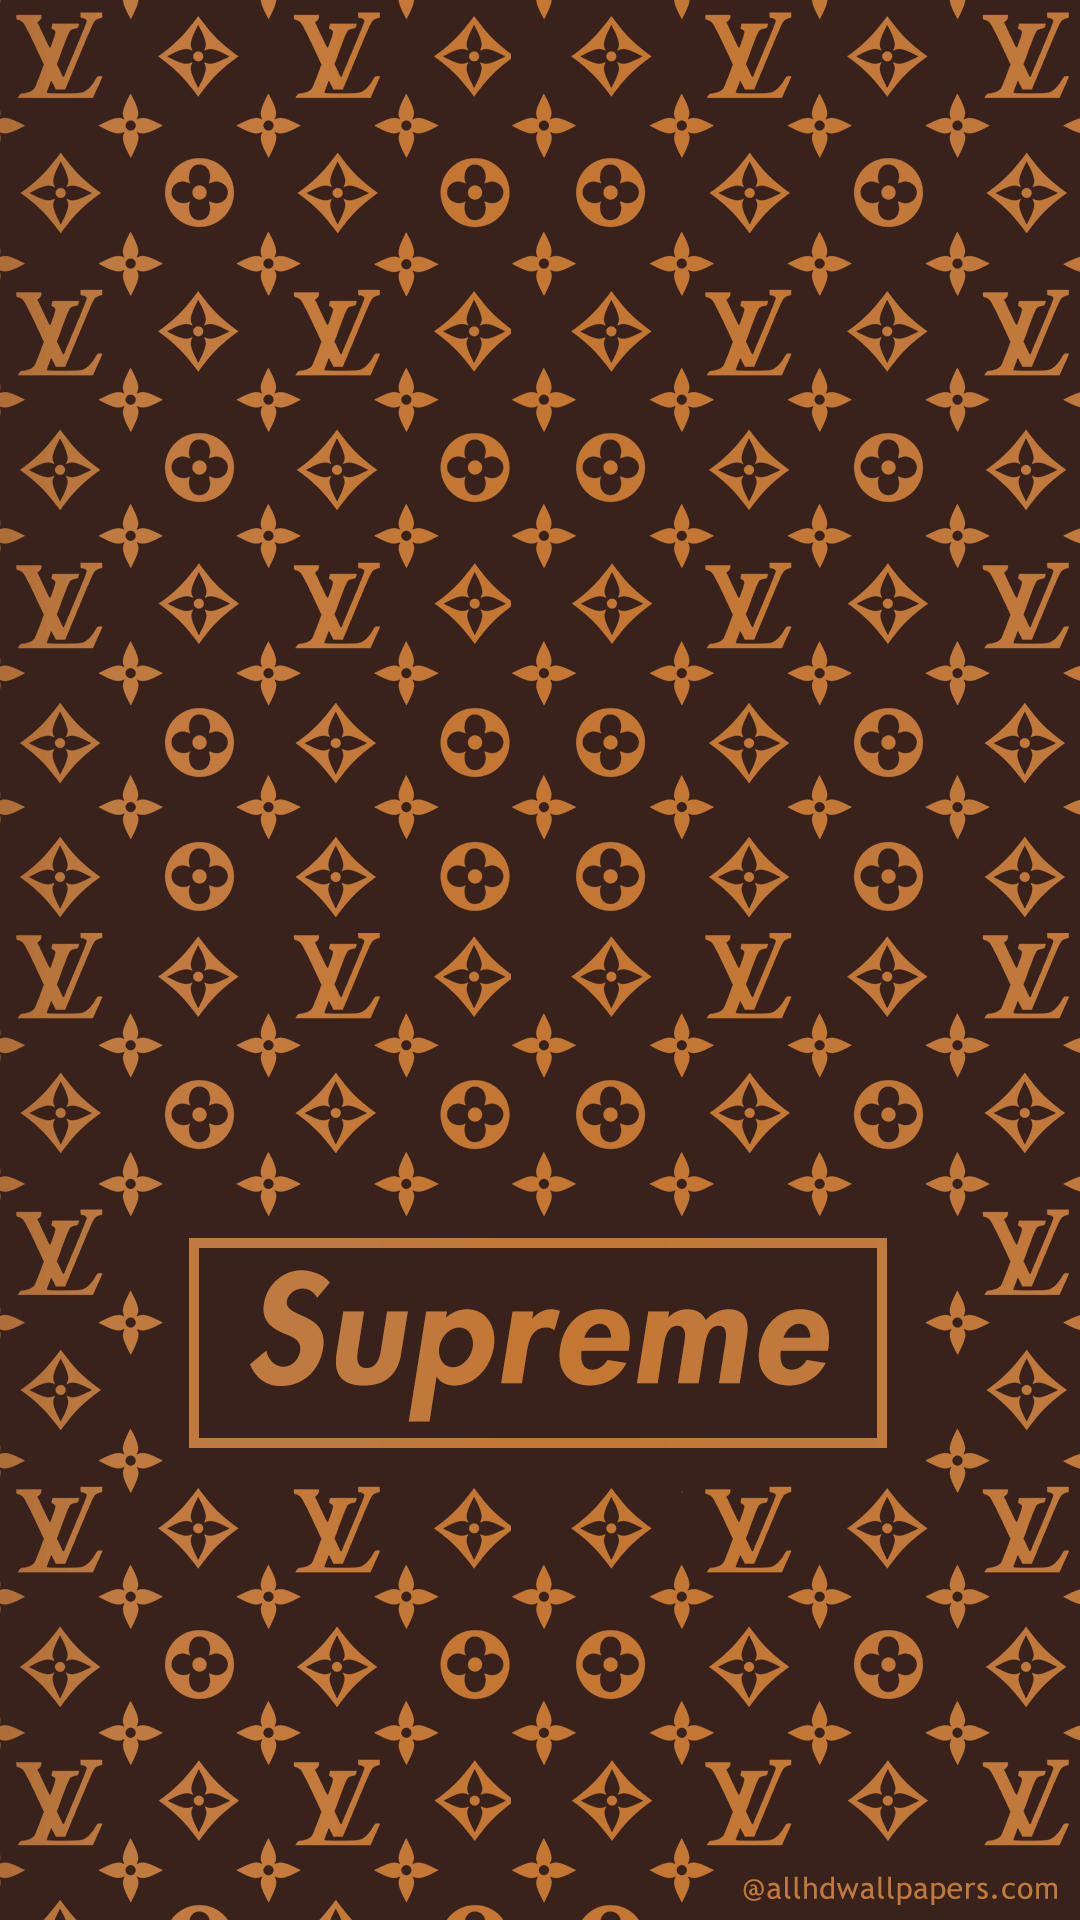 Supreme Wallpaper for mobile Supreme mobile wallpaper LV pattern Mobile Wallpaper ...